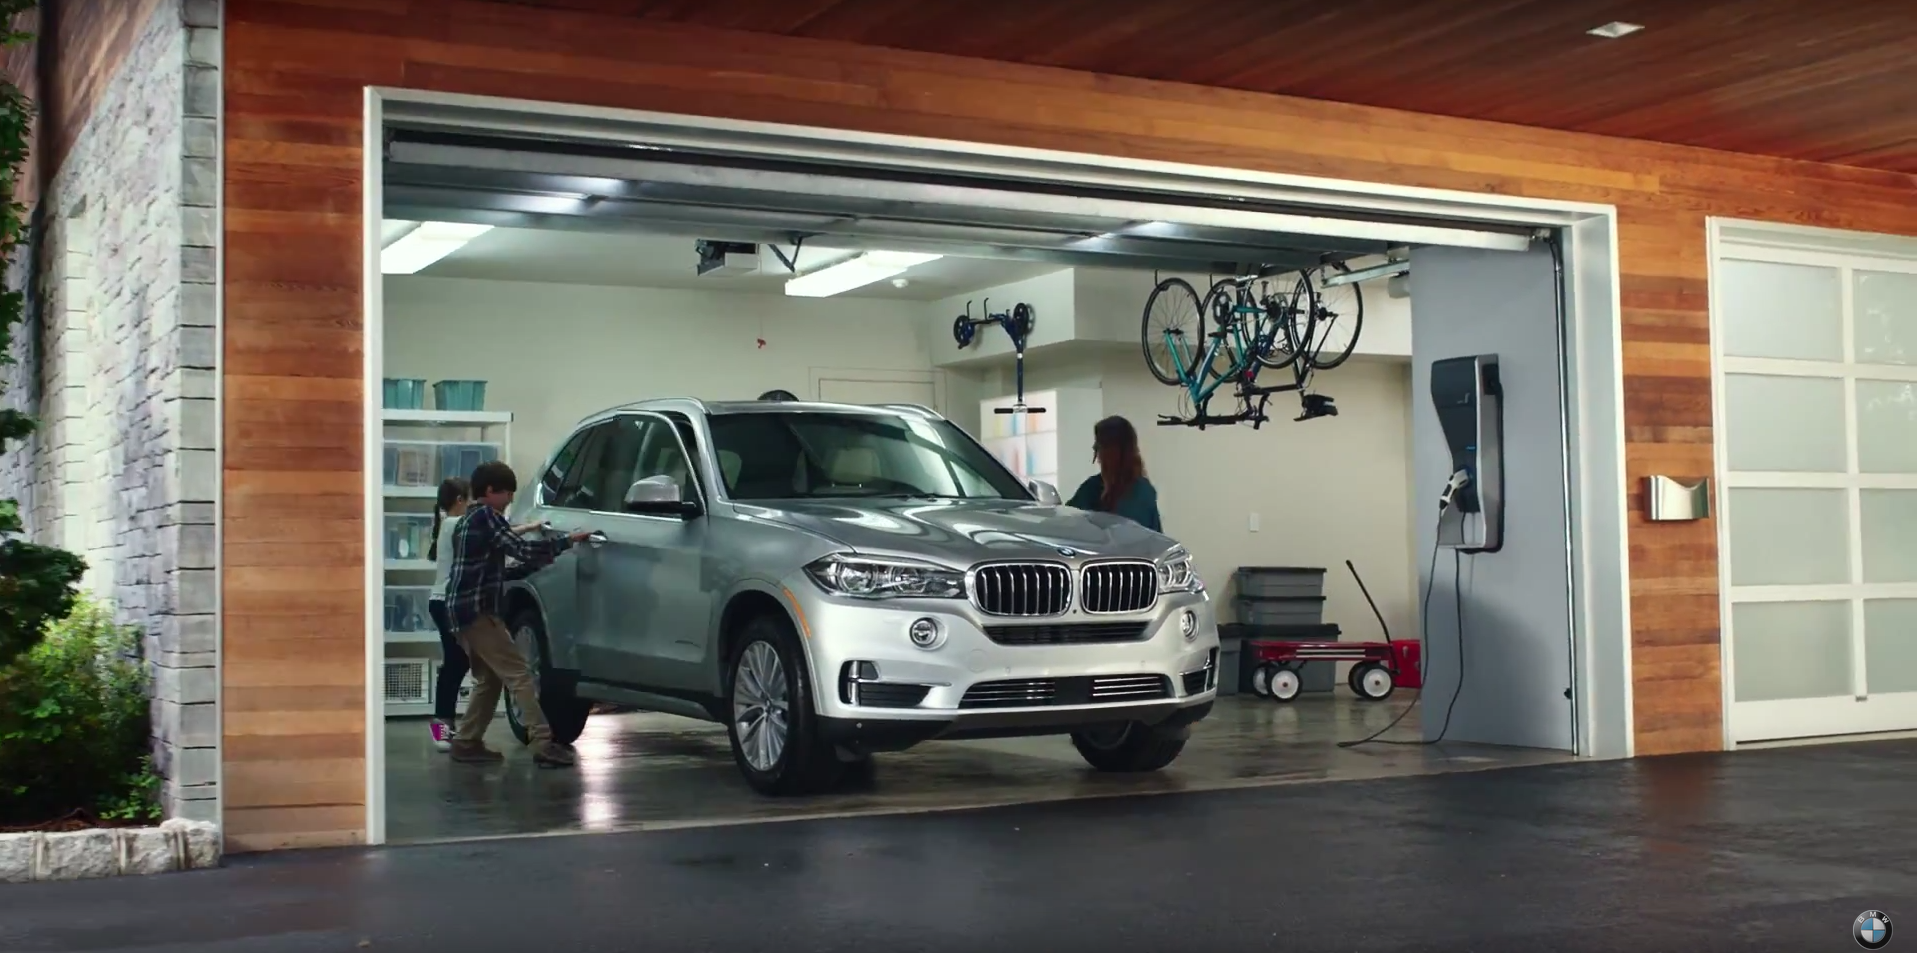 detail san bmw sports video activity dealer at new vehicle of